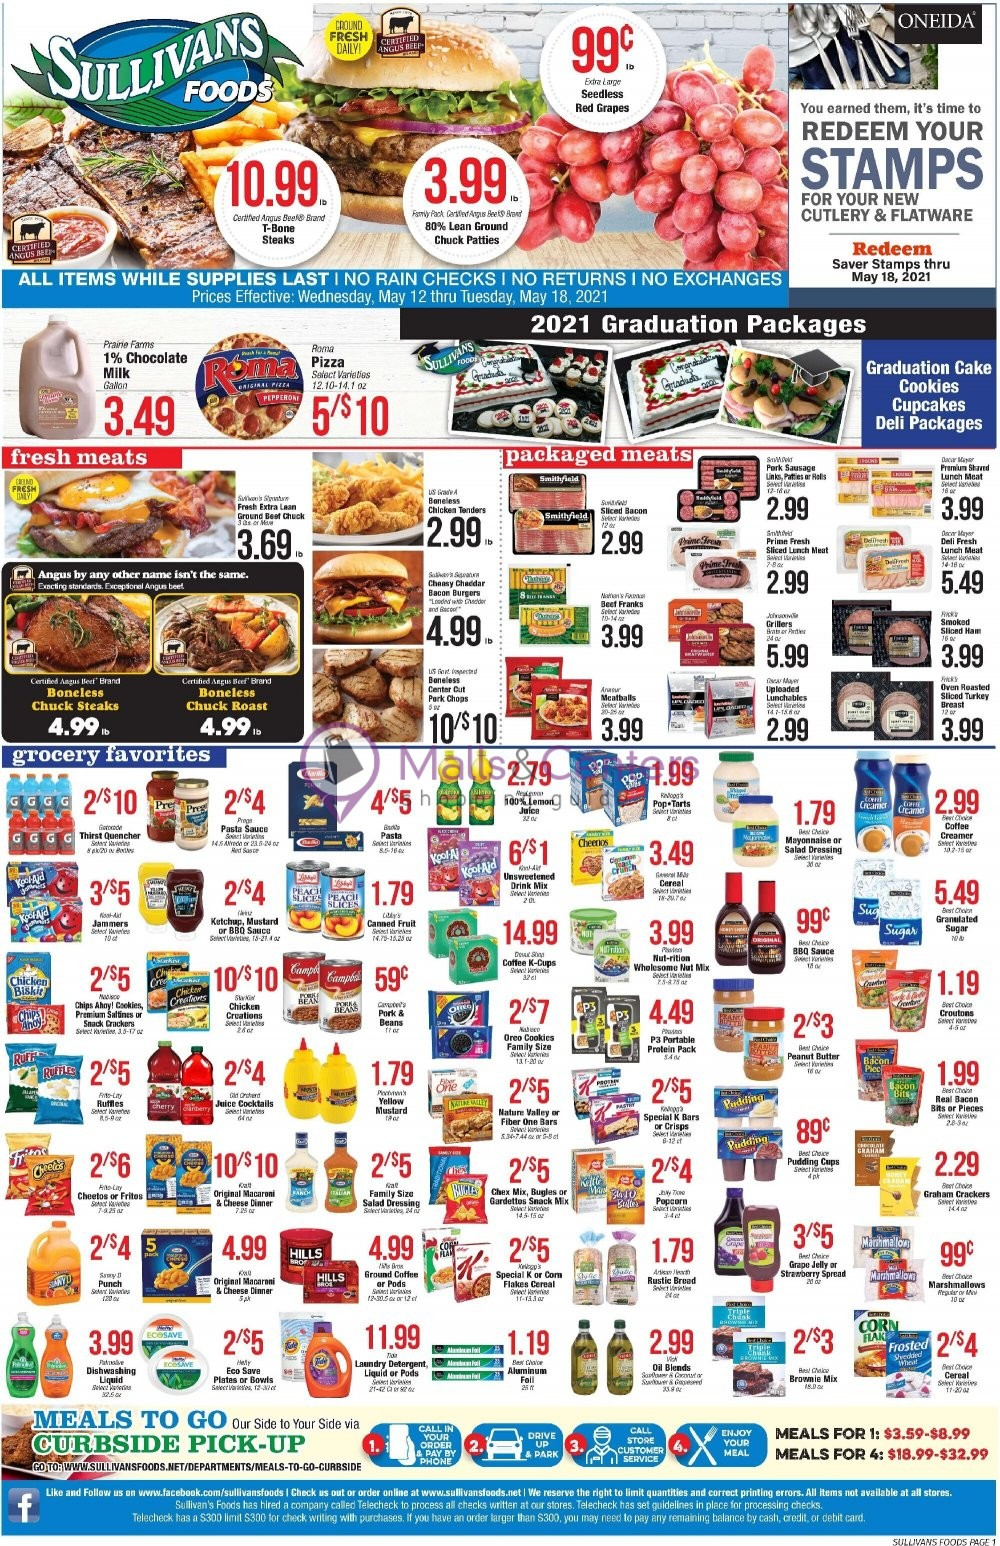 weekly ads Sullivan's Foods - page 1 - mallscenters.com